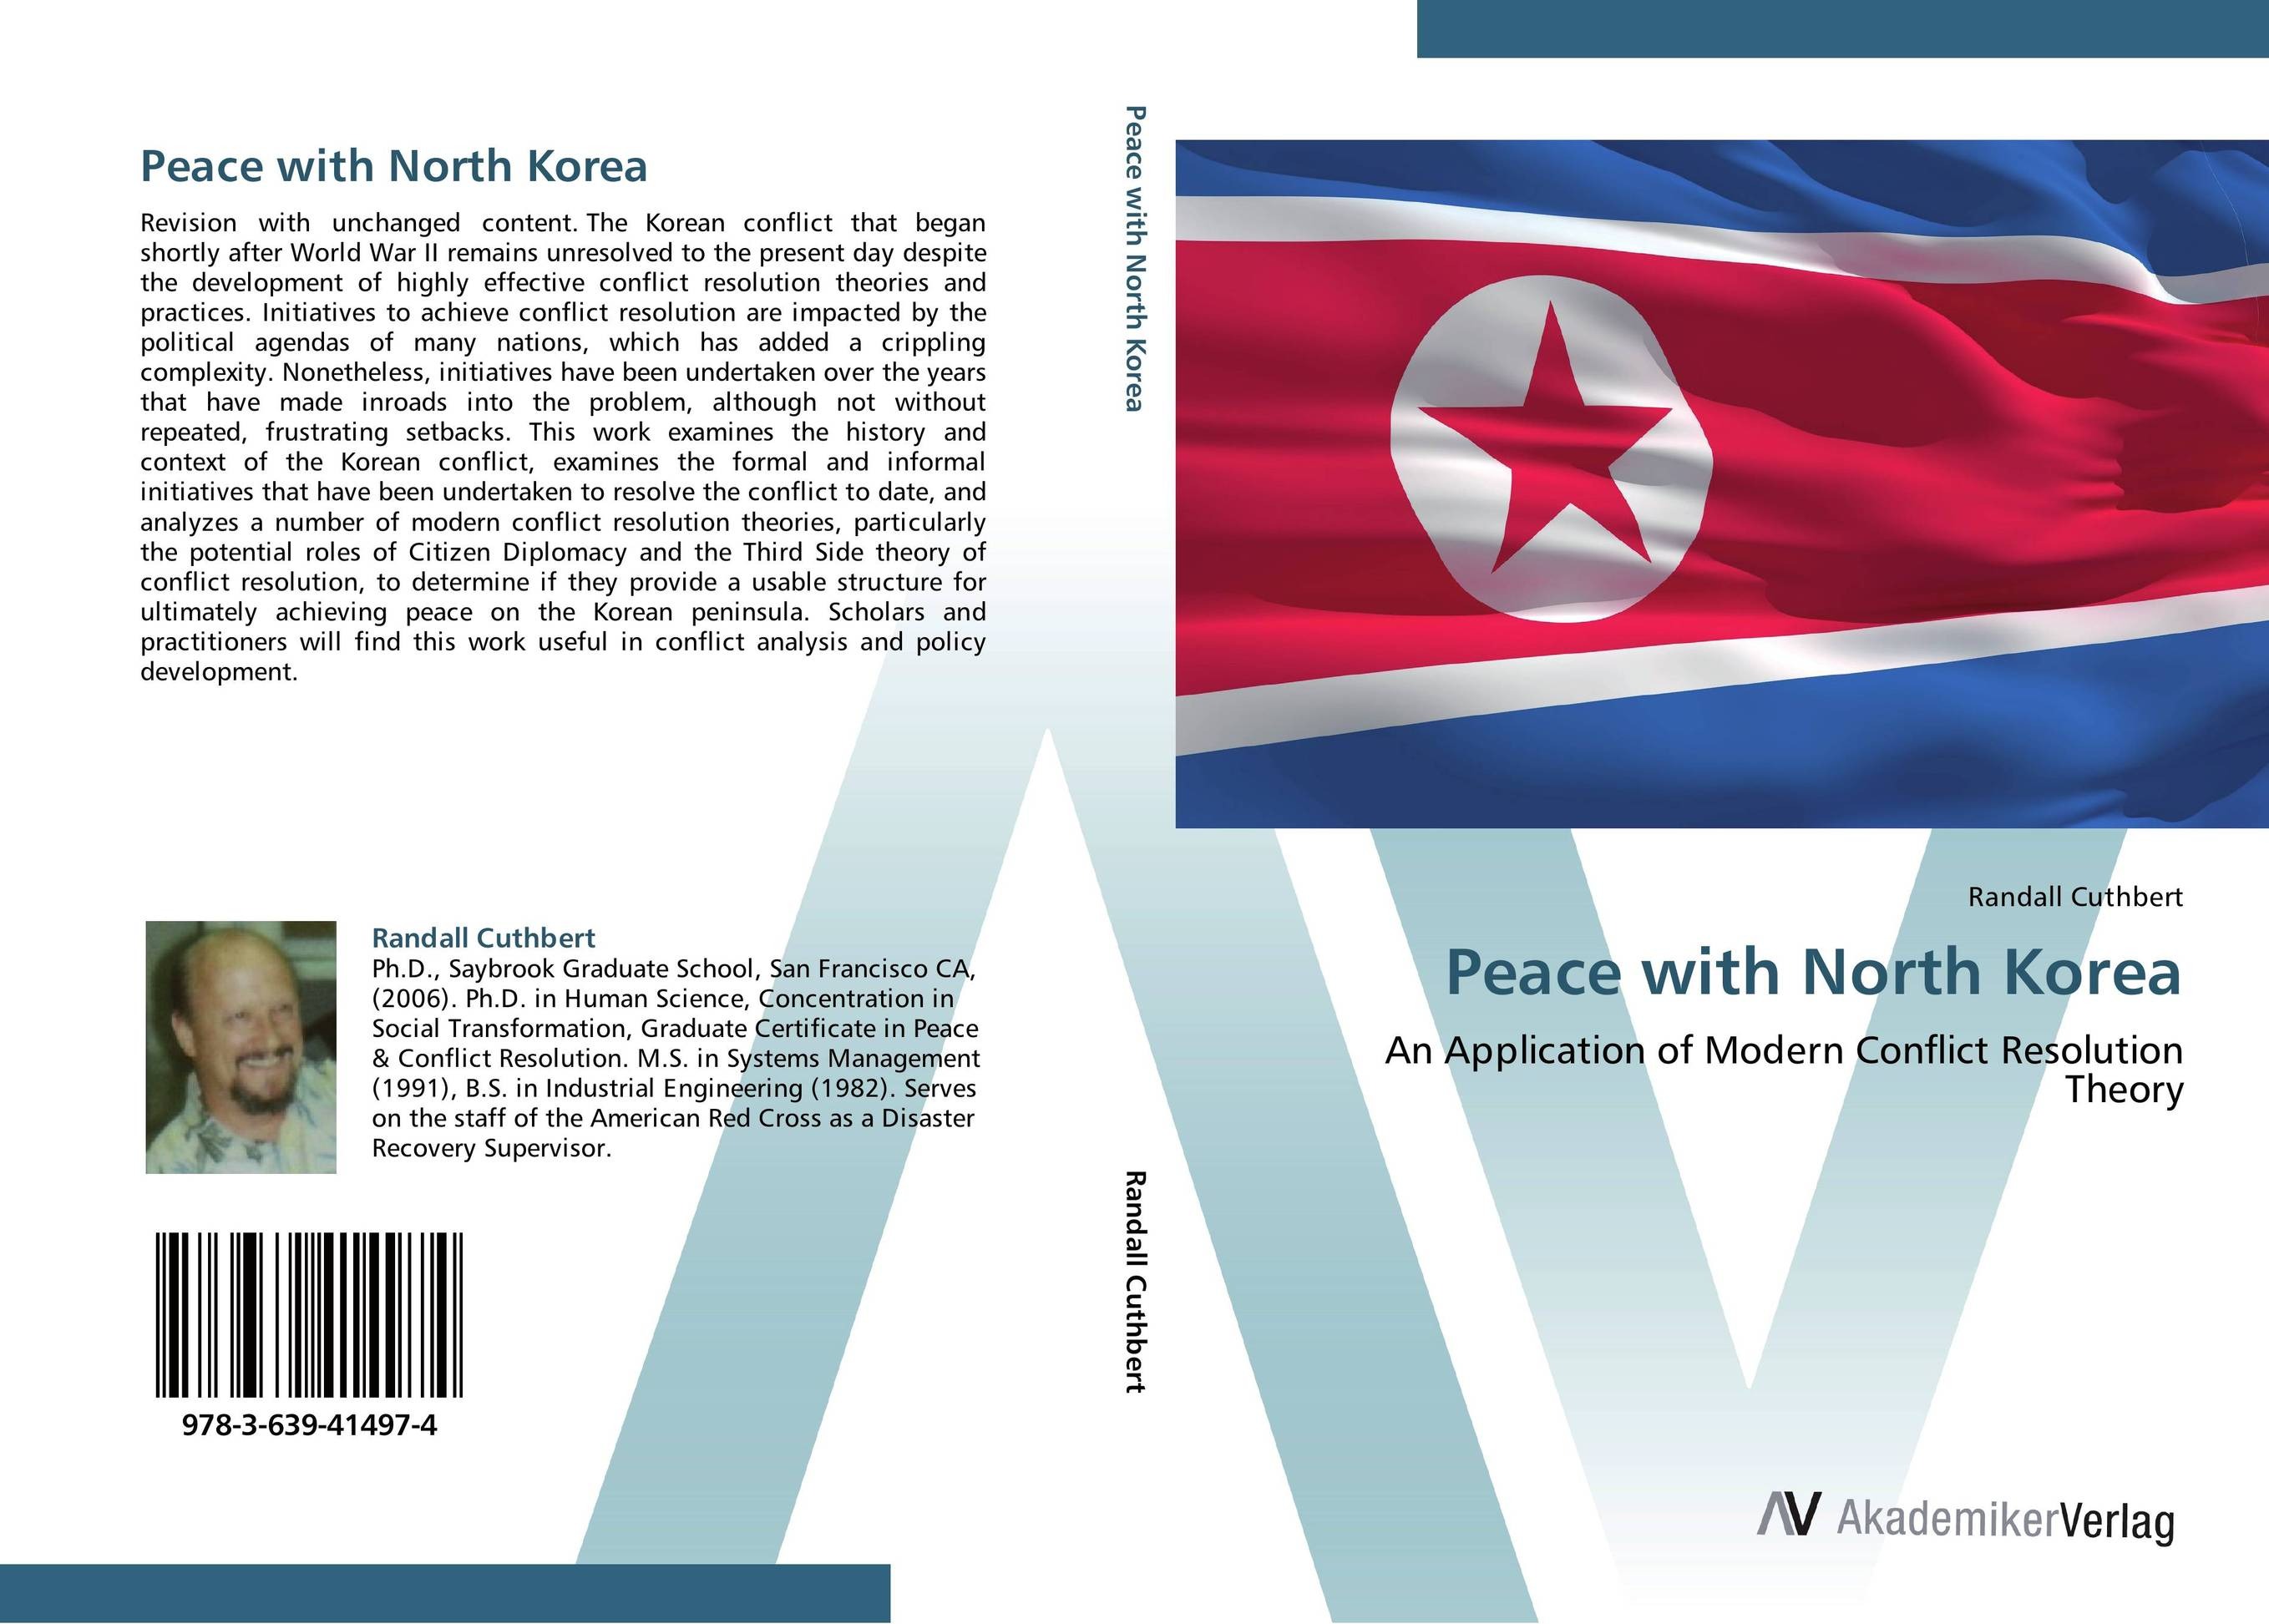 Peace with North Korea human elephant conflict mitigation initiatives